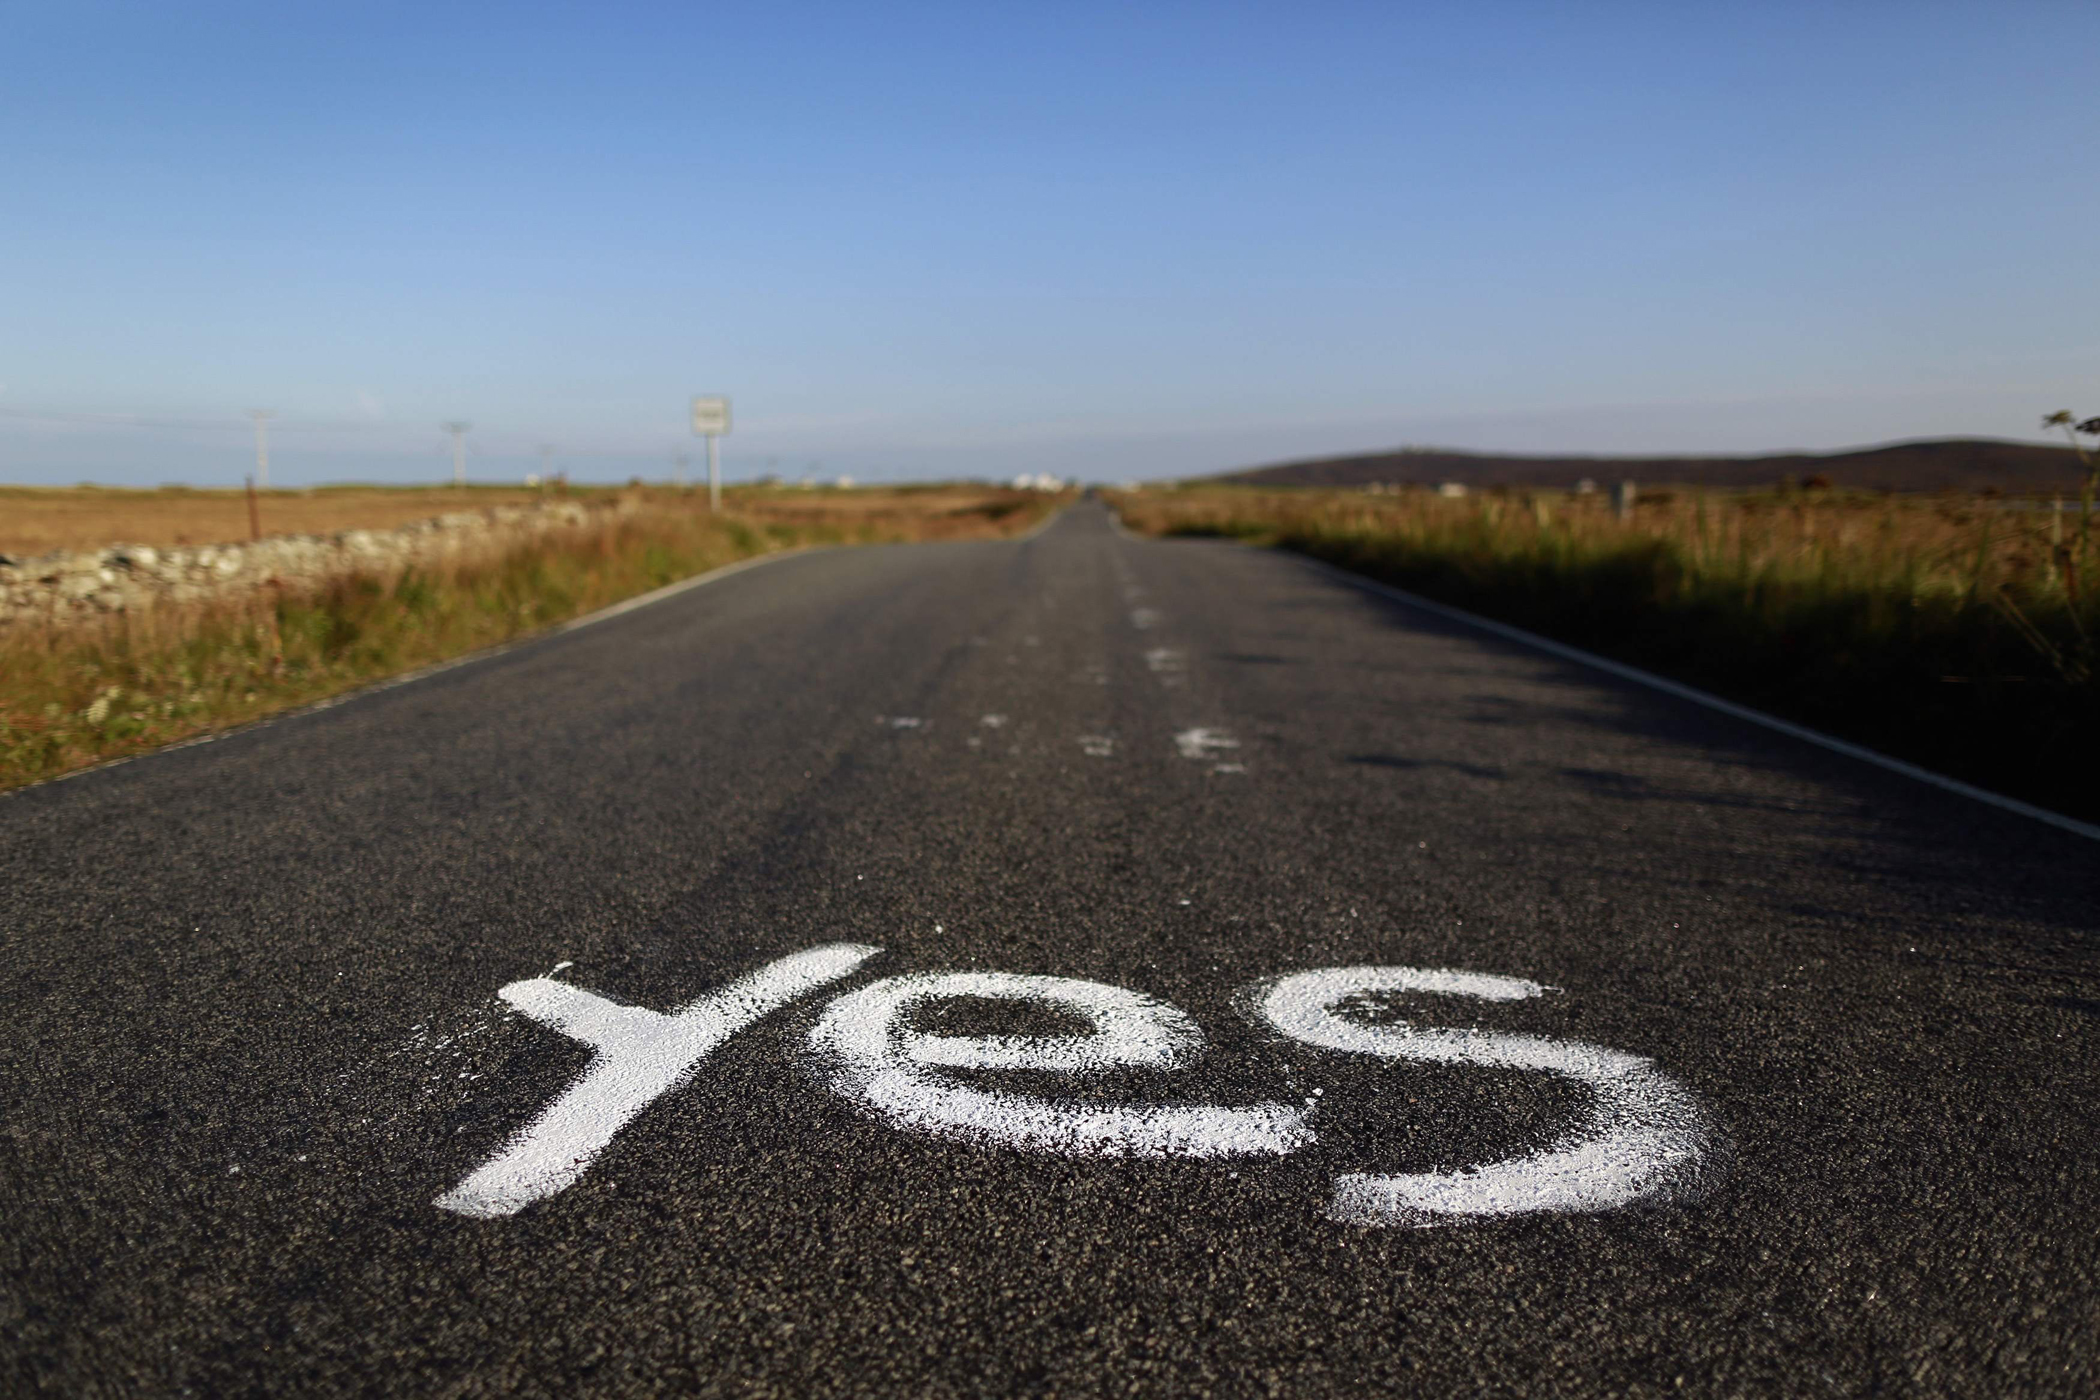 Graffiti supporting the  Yes  campaign is painted on a road in North Uist in the Outer Hebrides, Sept. 17, 2014.